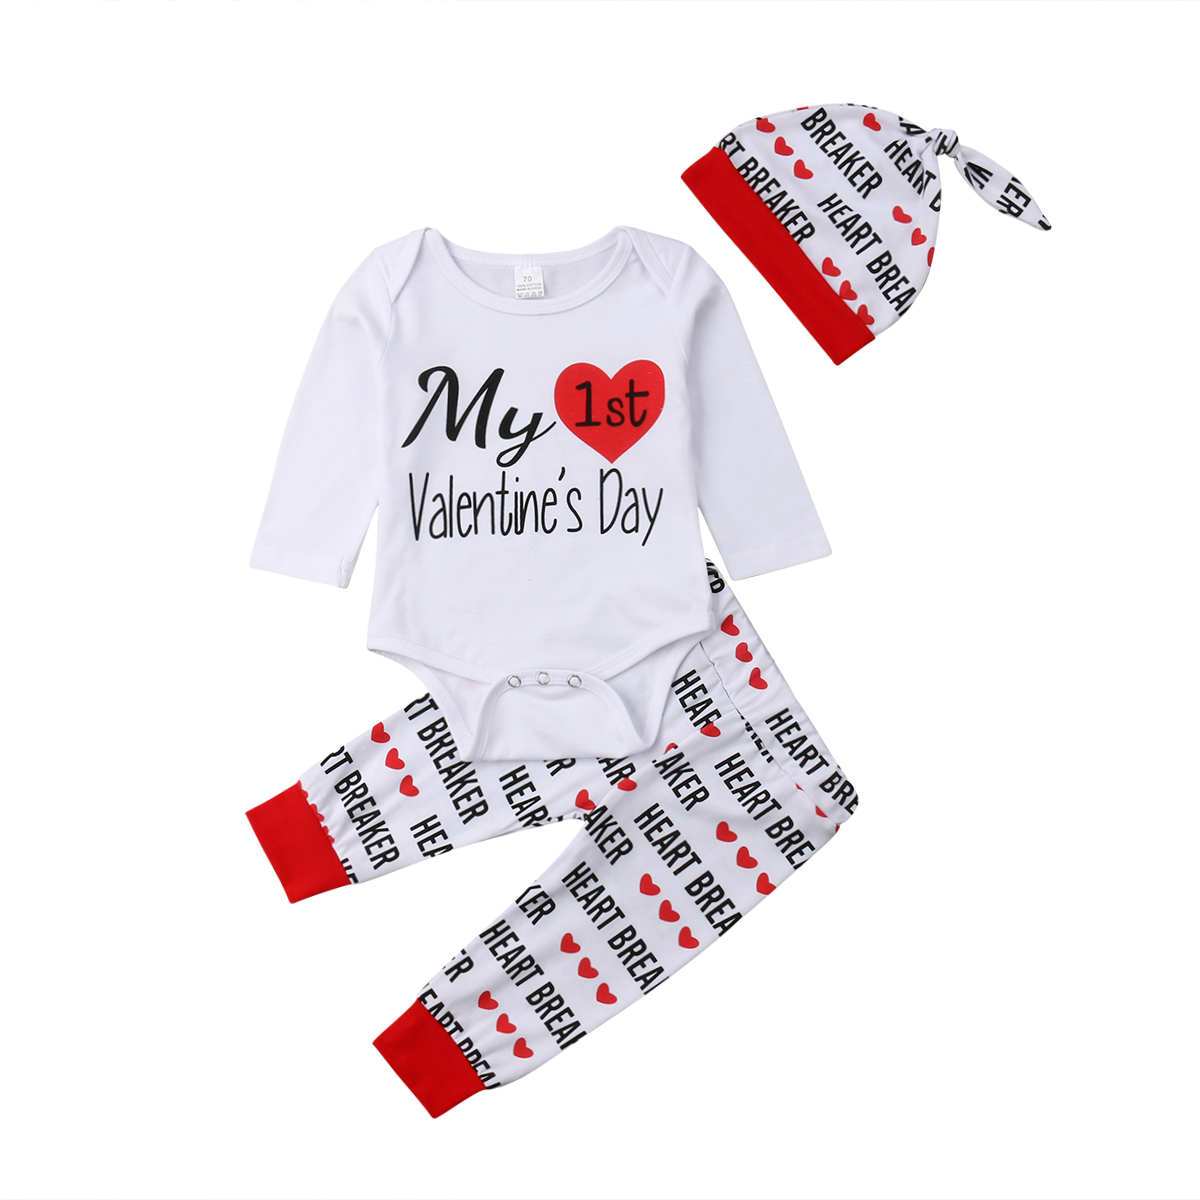 Baby Vests Bodysuits Baby Grows My First Christmas Dinner Soft Cotton Unisex